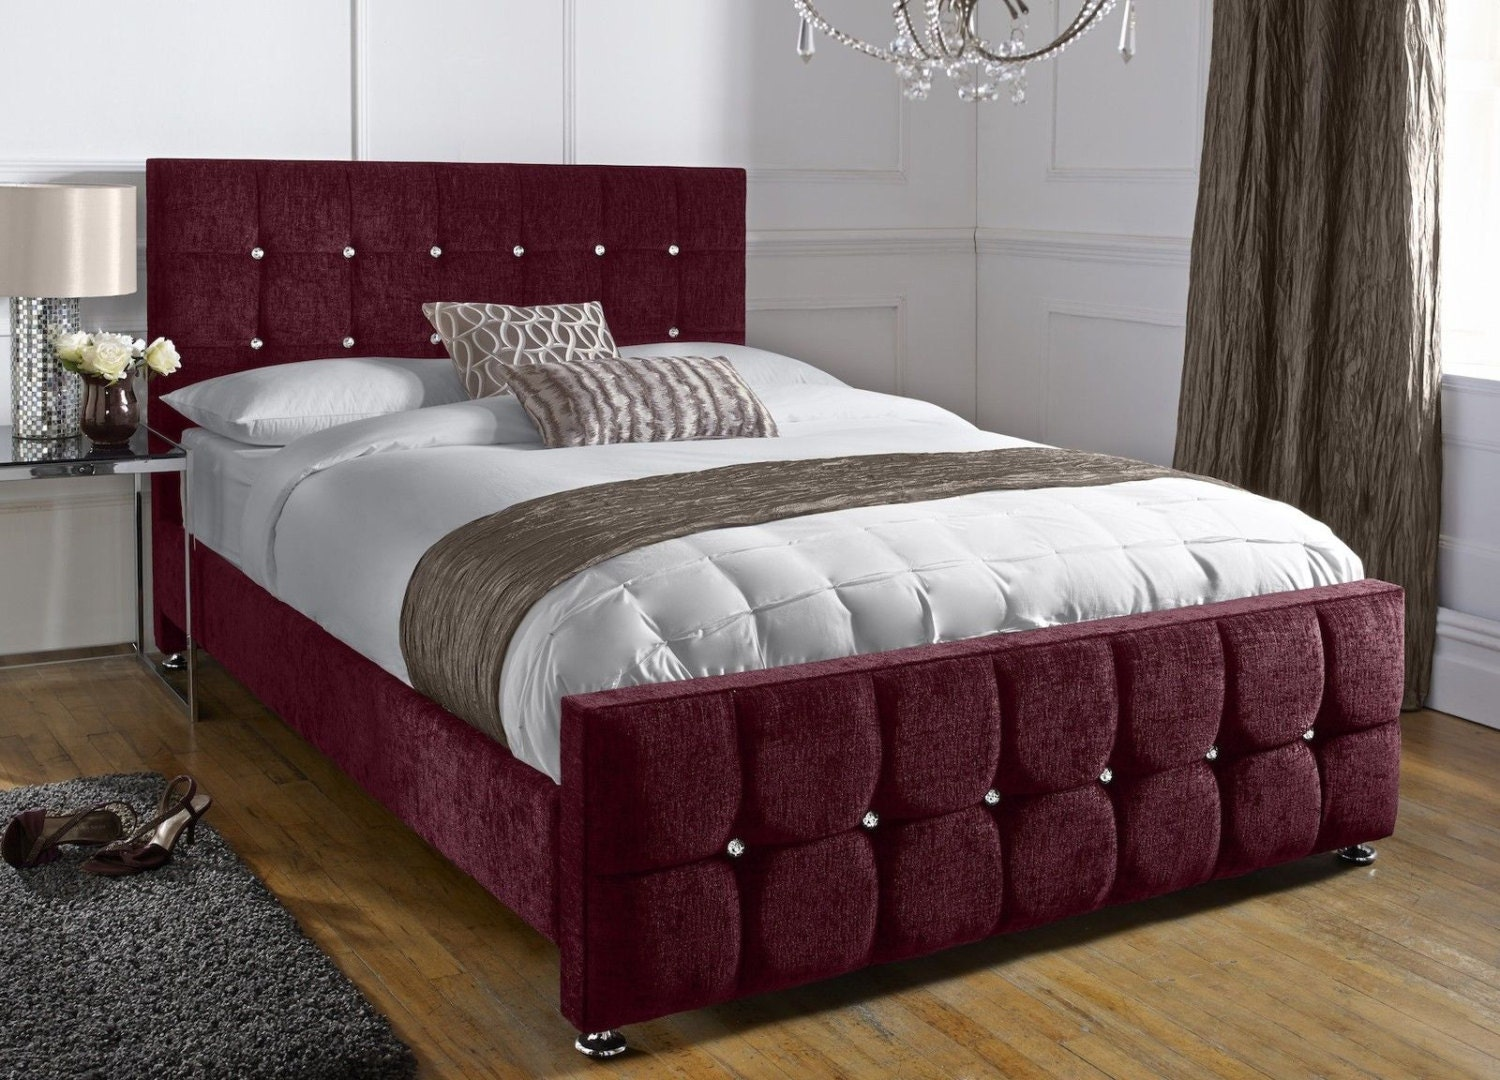 King Size Bedroom King Size Bed Etsy